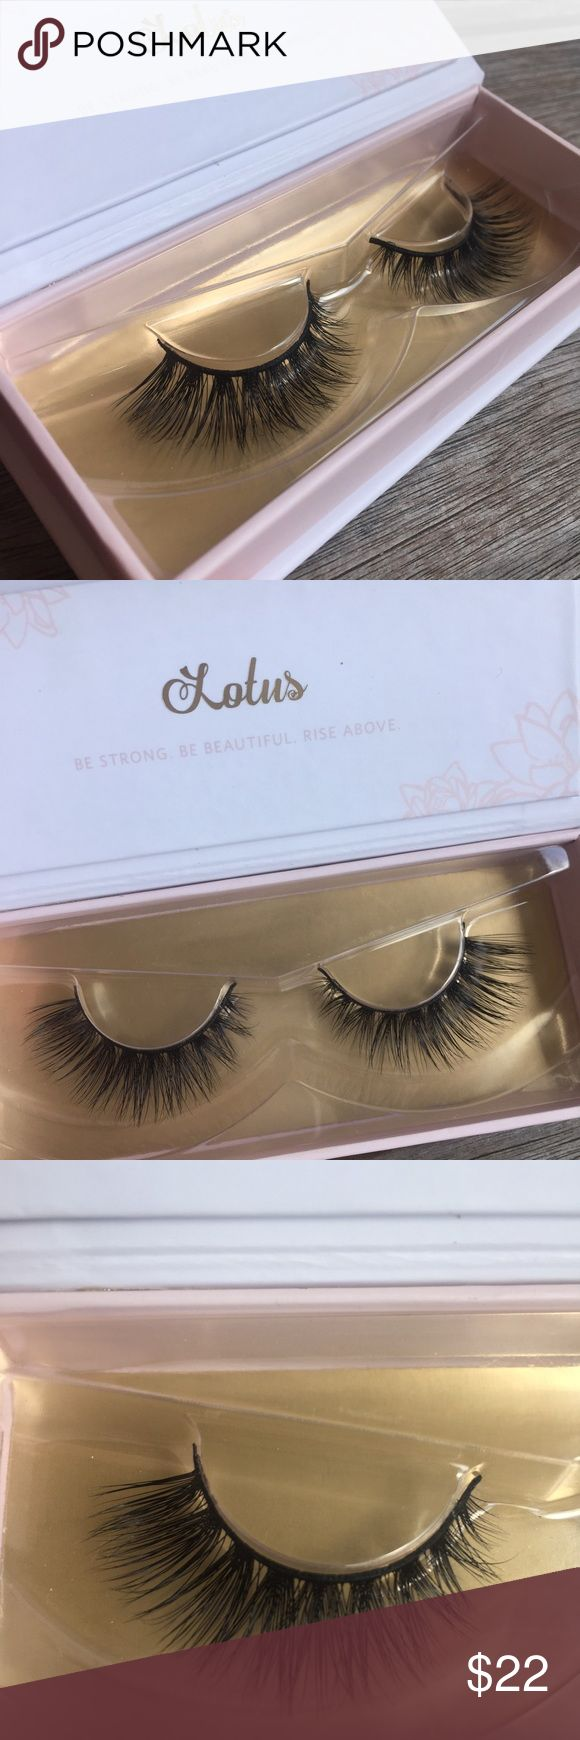 Lilly lashes Beautiful lashes by the brand lotus lashes similar to Lilly lashes, medium volume number 45. Long and 100% mink lashes perfect for everyday or special occasions. Retail price shown in the fourth pic please no lowball offers you will be blocked. Thank you Anastasia Beverly Hills Makeup False Eyelashes